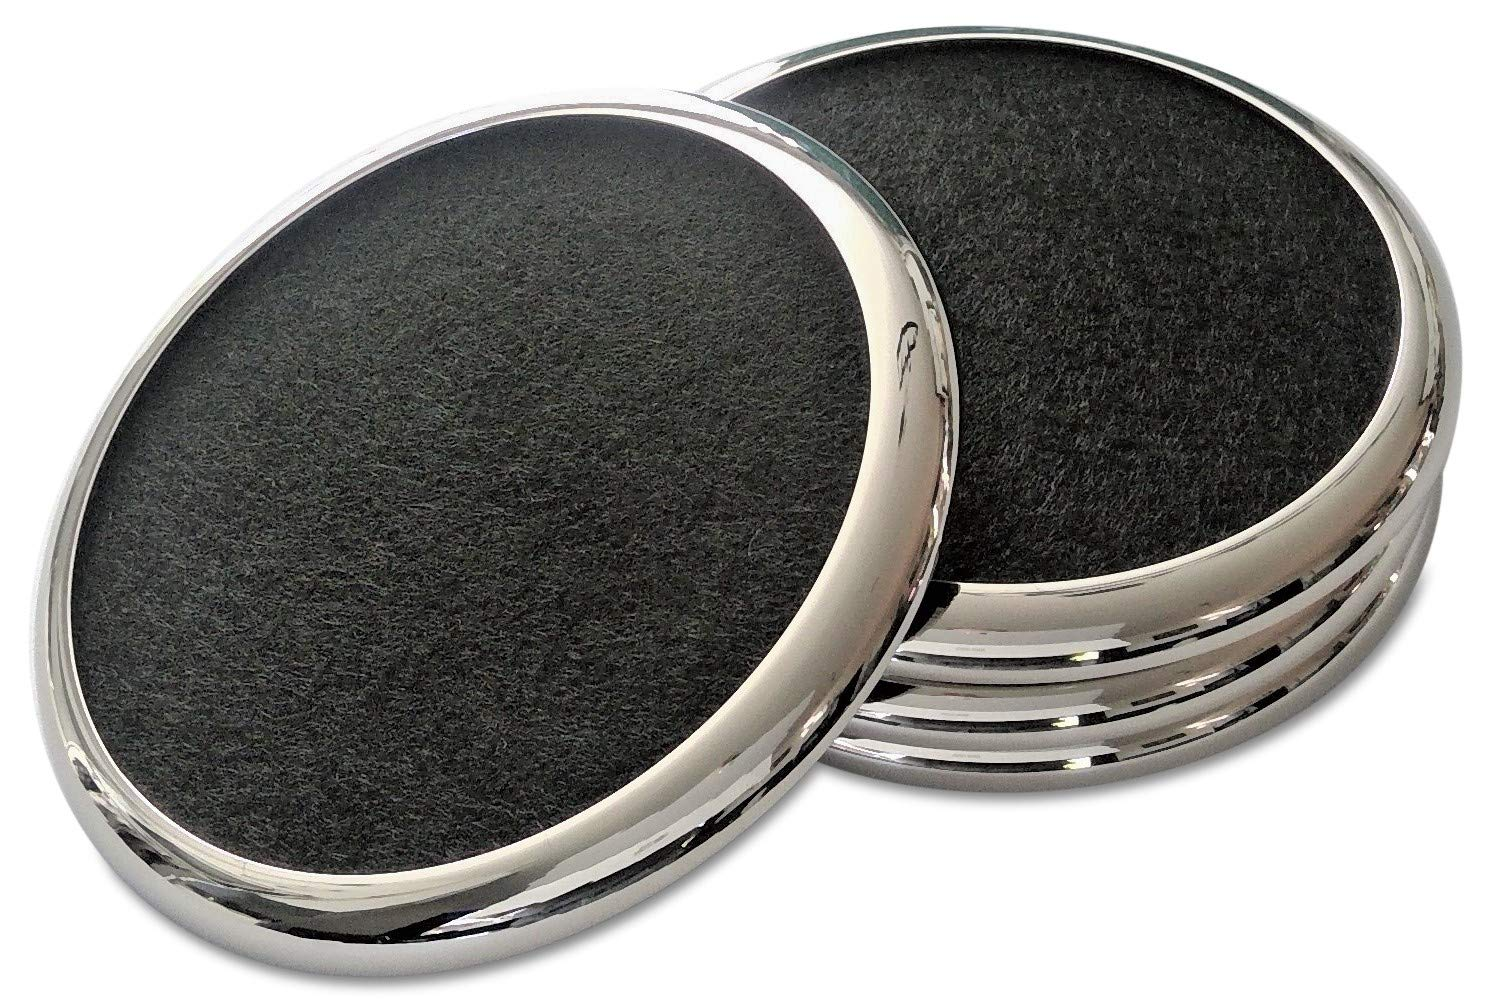 Comfortena Regal Drink Coasters with Absorbent Felt Inserts | Unique Table Coaster Set with Silicone Tray and Metal Ring Accent | Perfect for Hot and Cool Beverages in Glasses, Cups, and Mugs | Silver